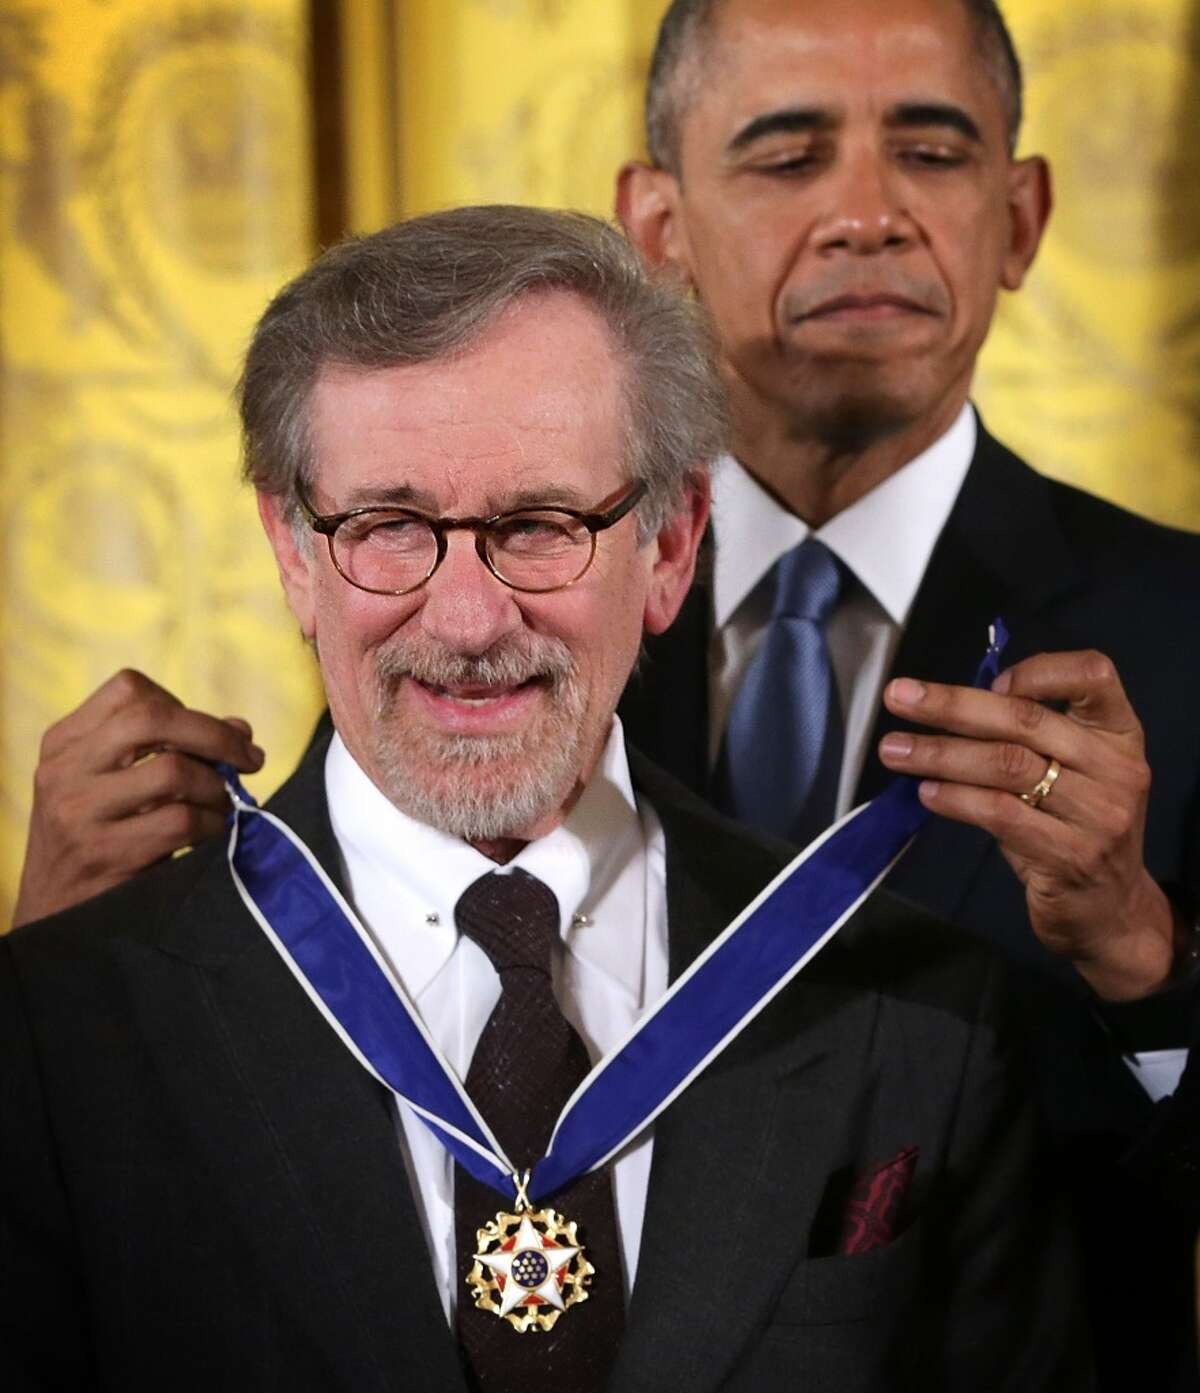 """Steven Spielberg His movie """"Bridge of Spies"""" is nominated for an Academy Award for best picture."""